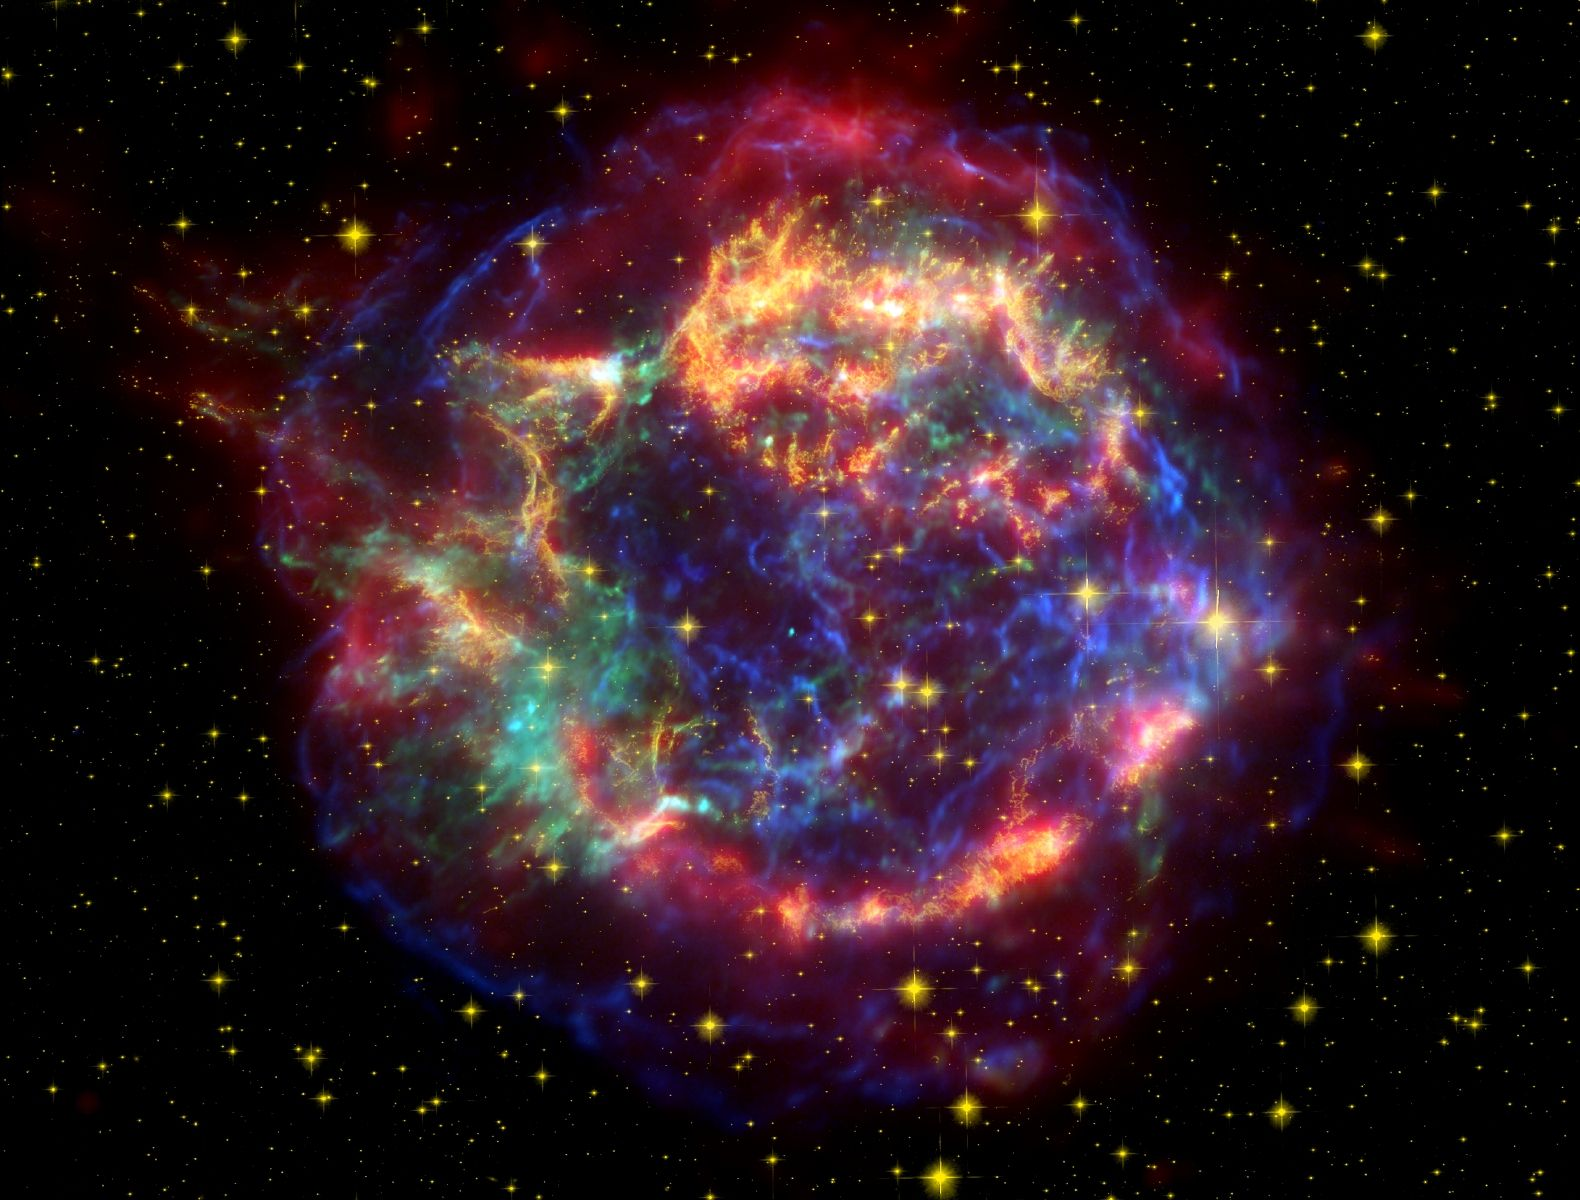 Real Supernova Explosion Hd Pics About Space Spitzer Space Telescope Nebula Space Images